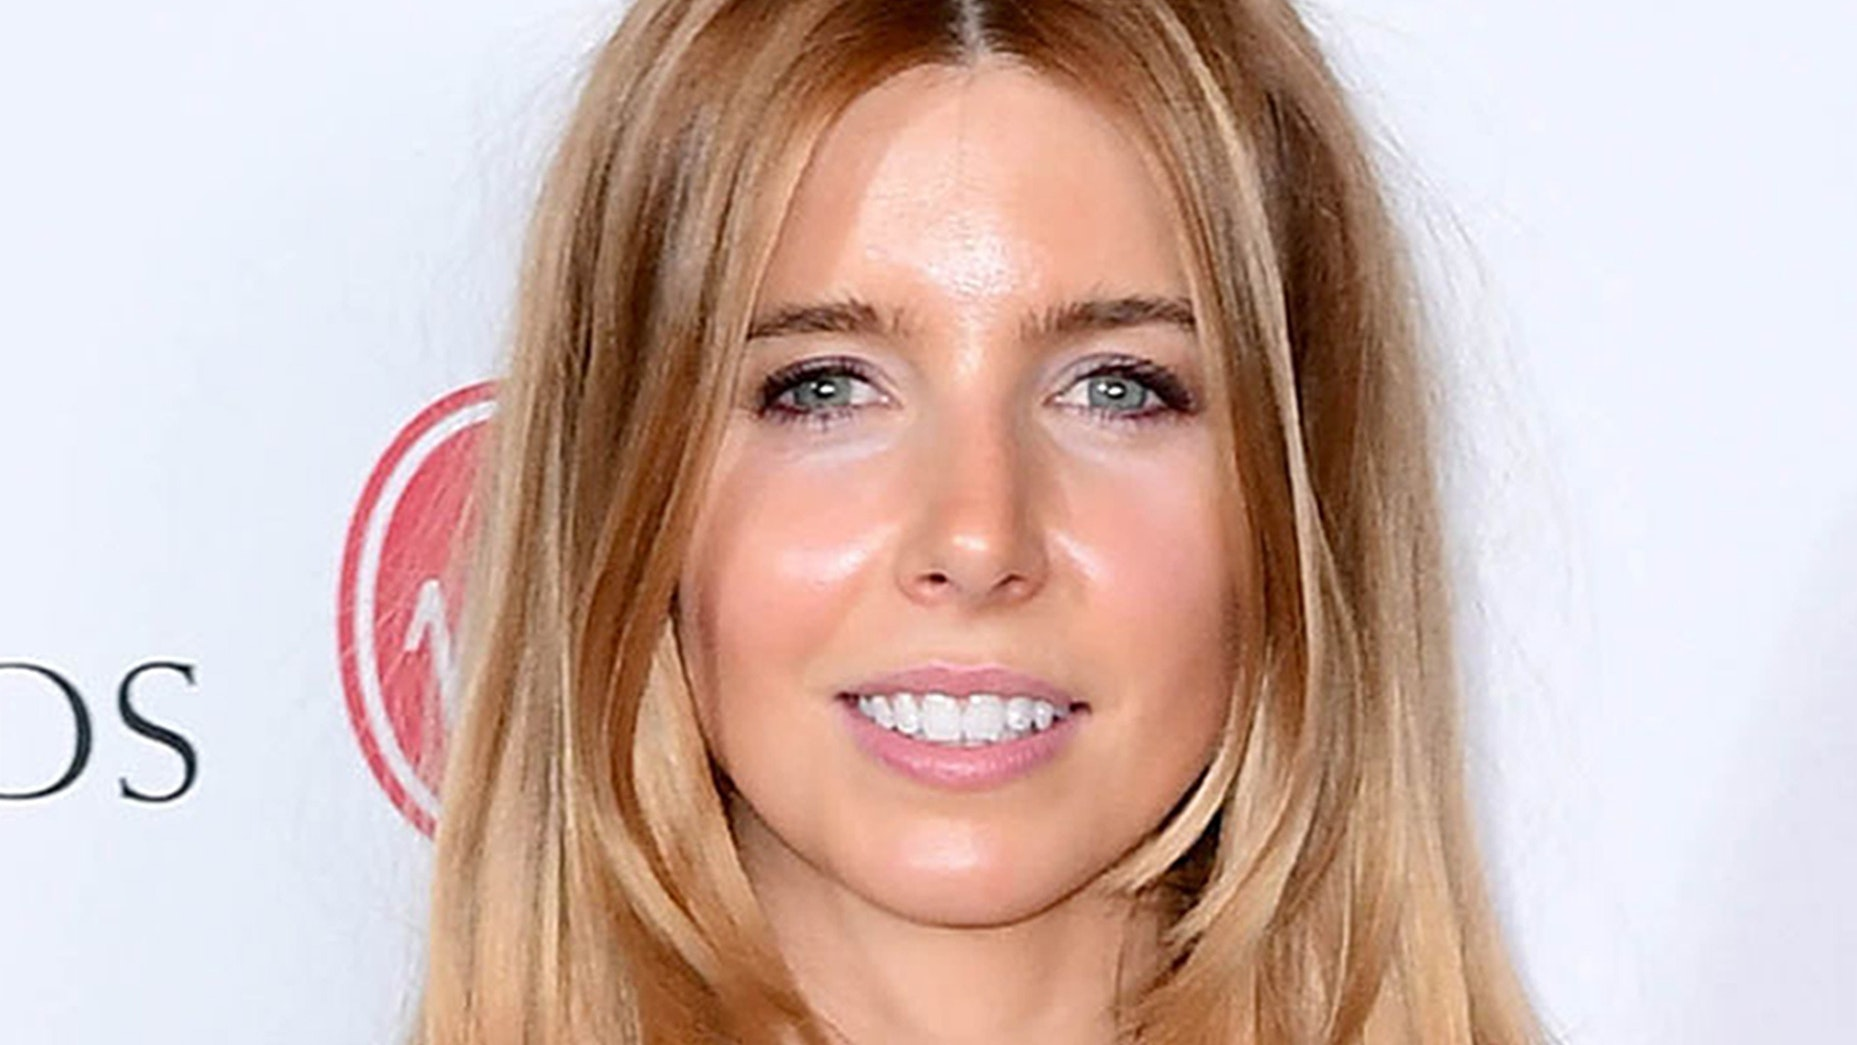 Stacey Dooley There Are Two Sides To Every Story